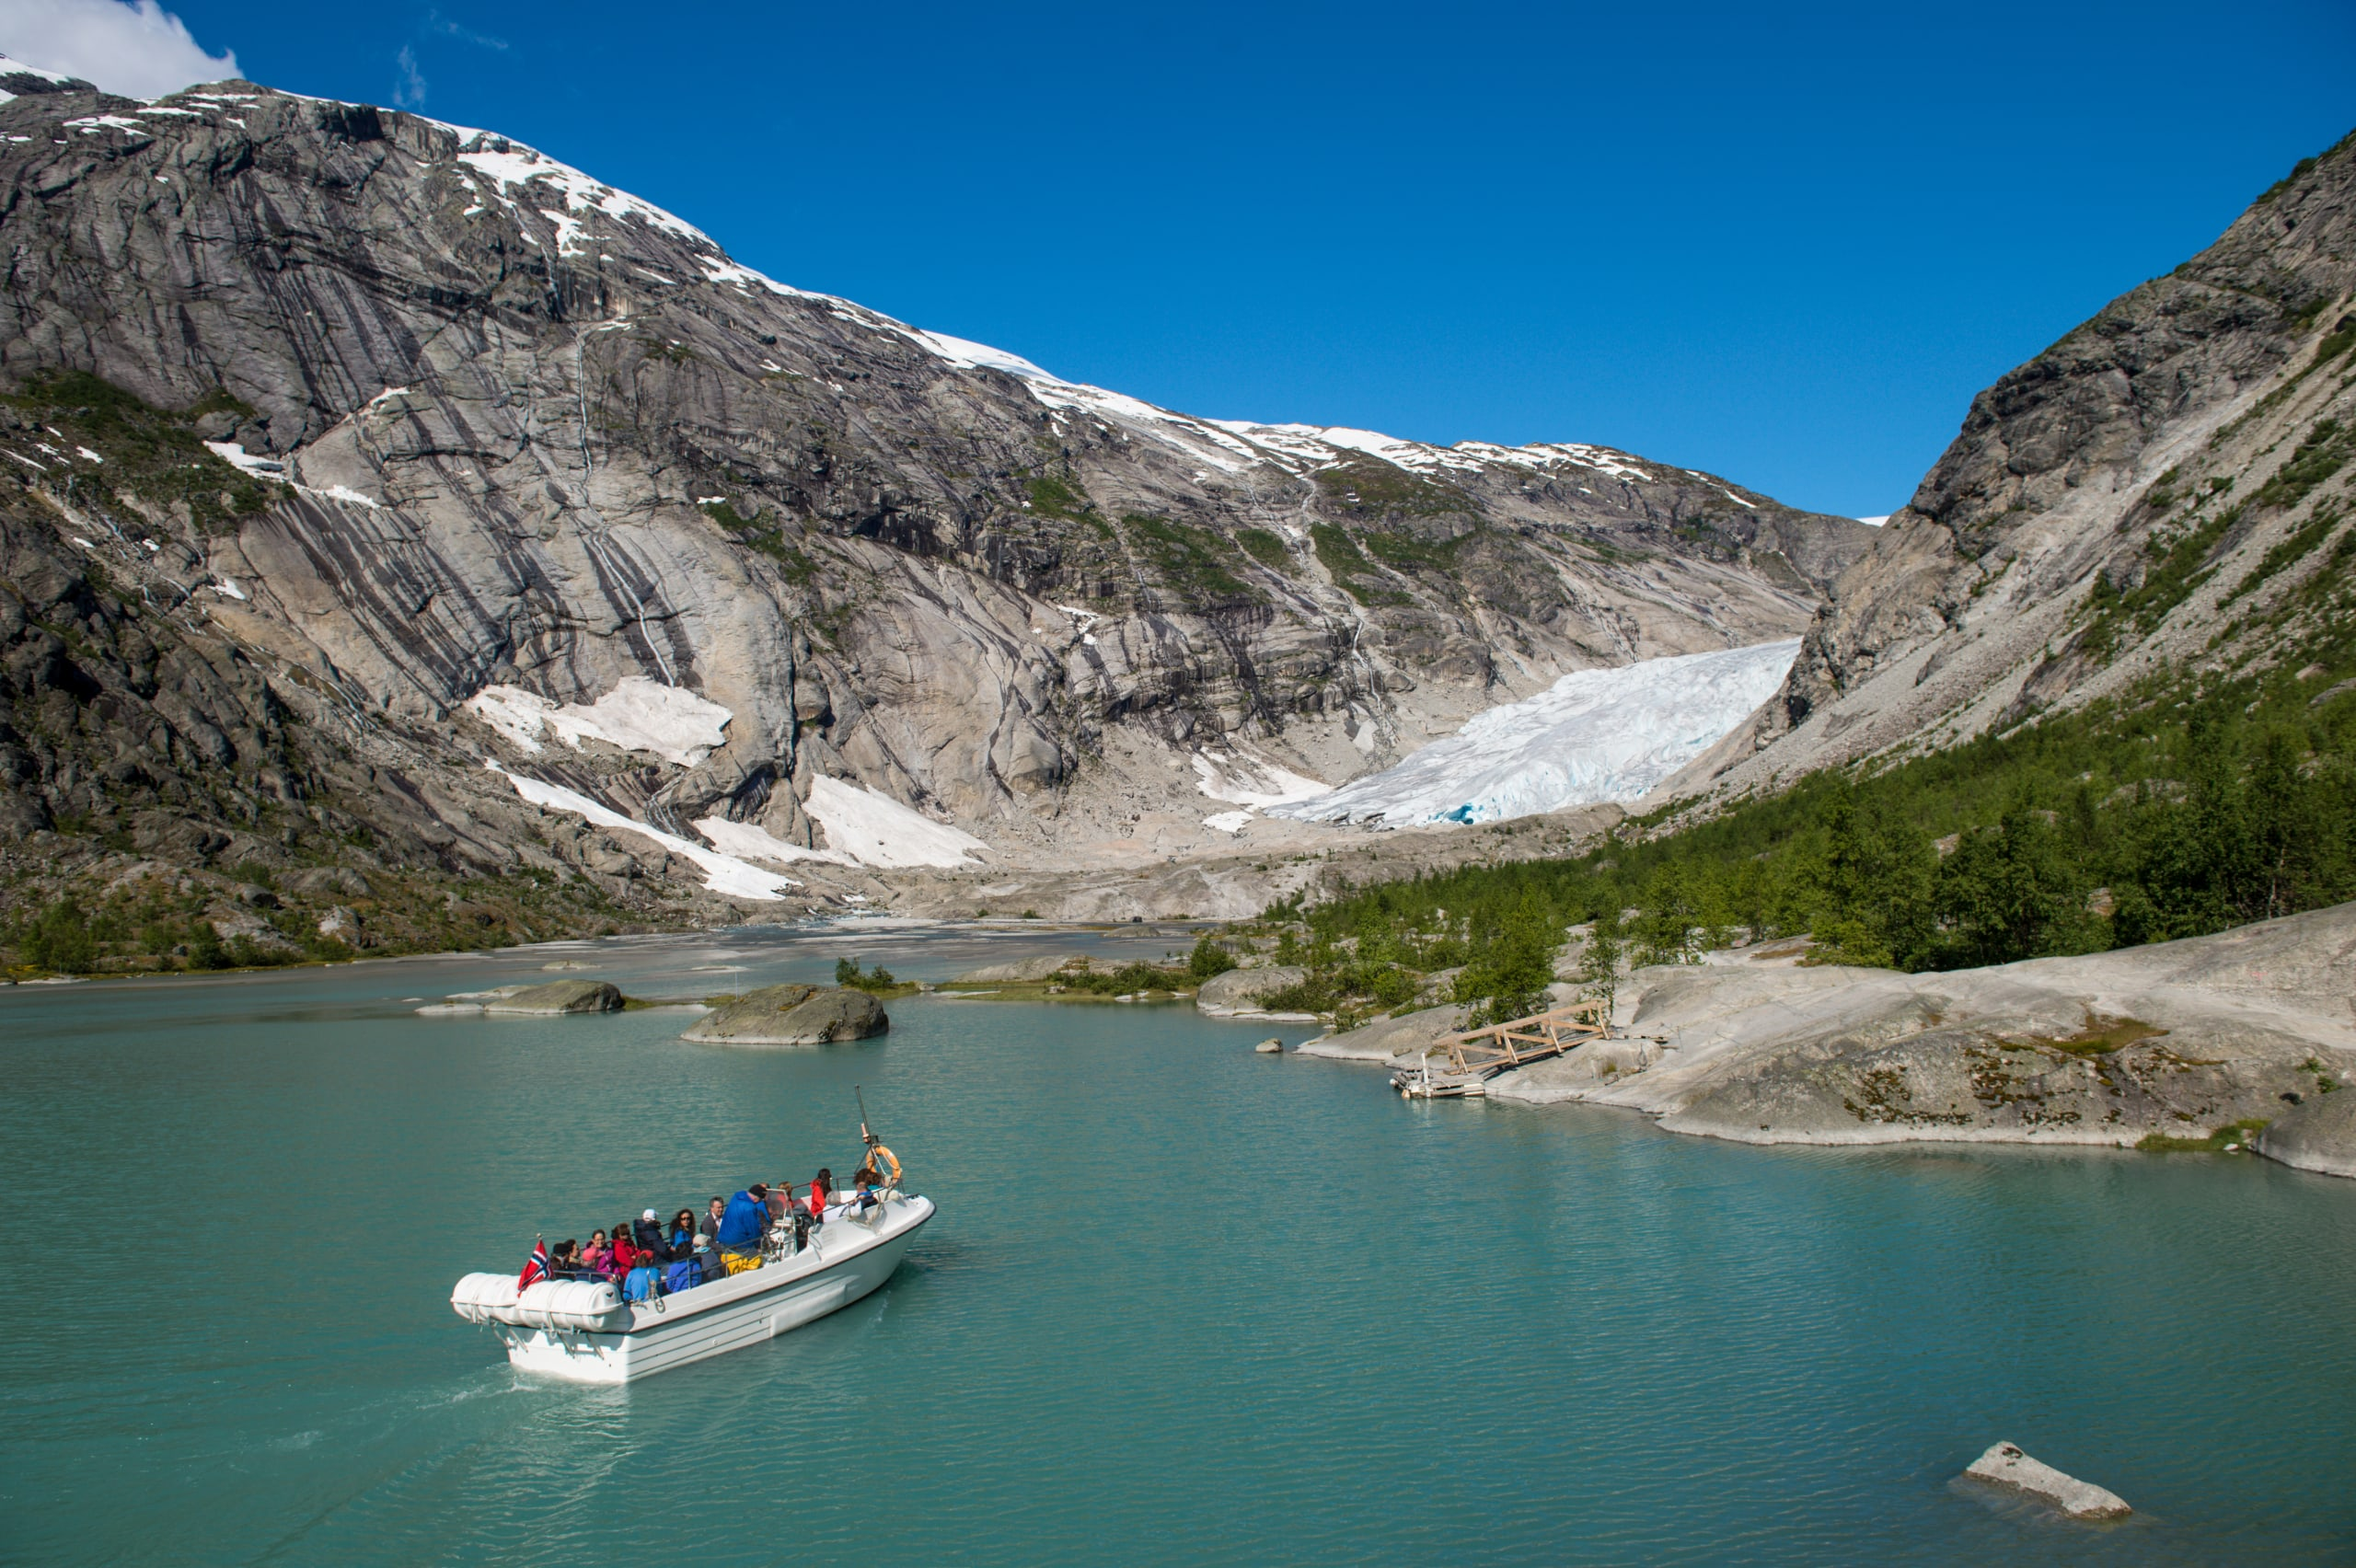 Boat headed for Nigardsbreen